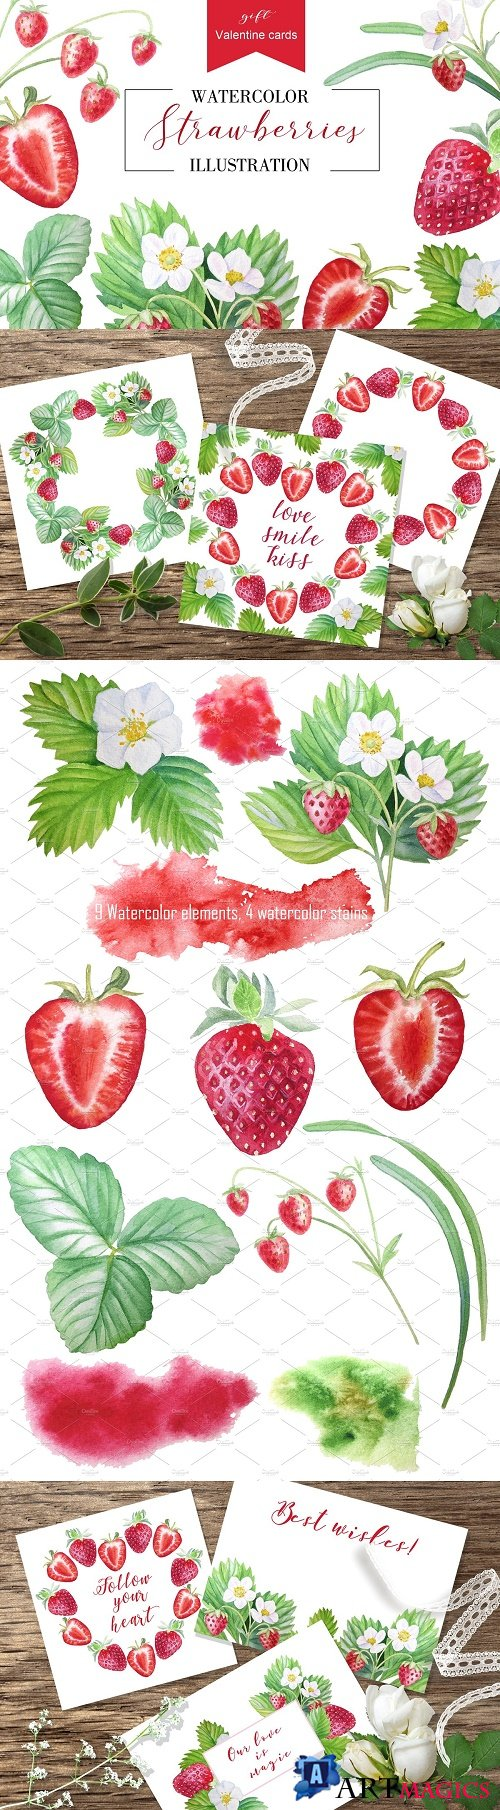 Strawberry + Valentine cards - 2540986